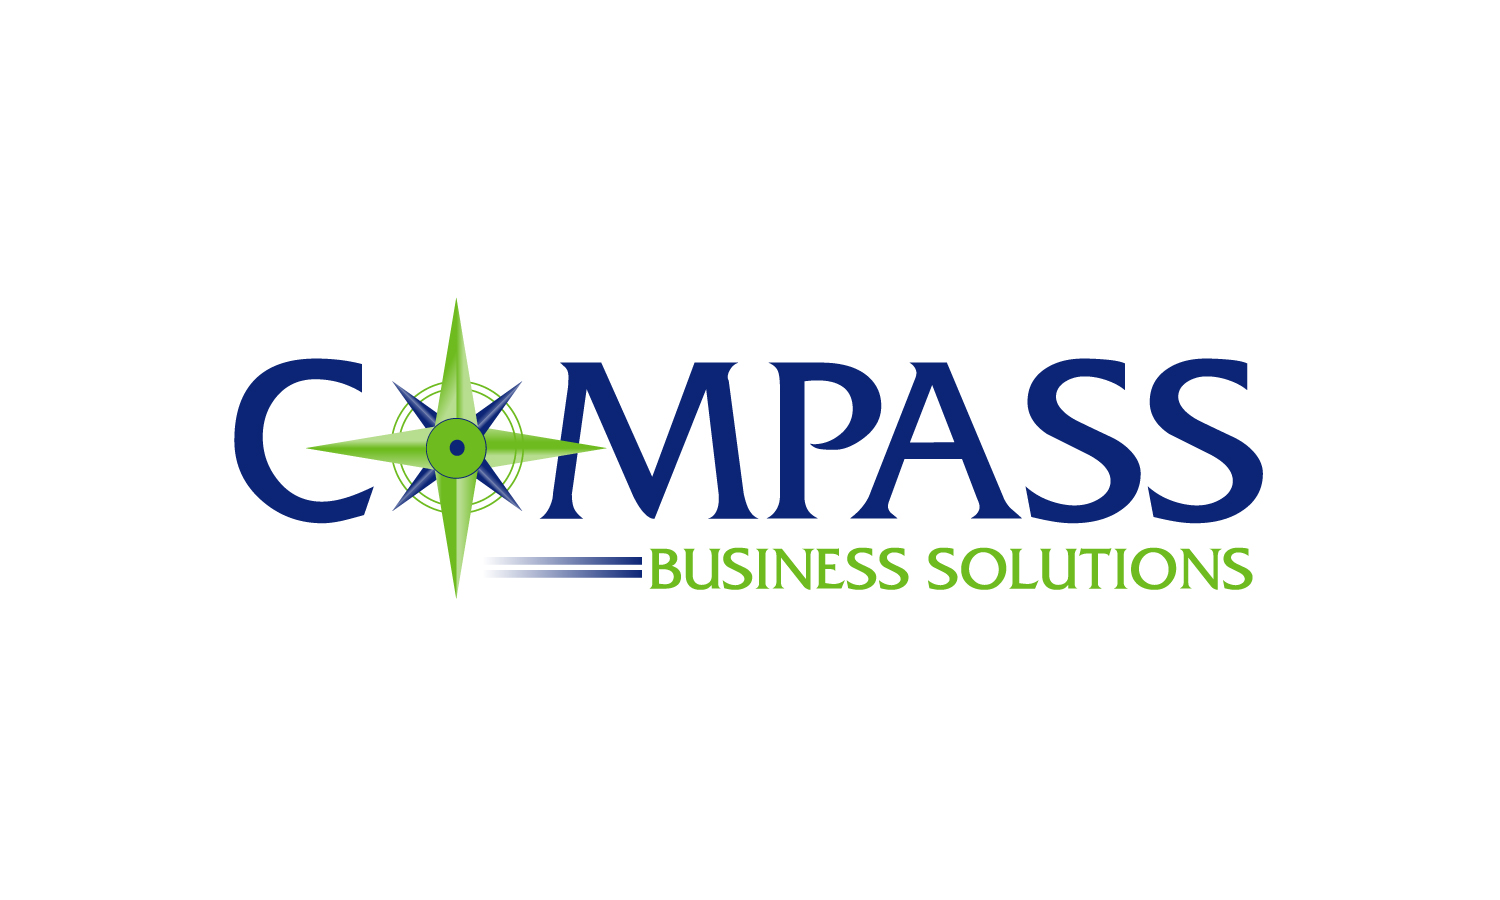 Compass business solutions jason ball presents cve certification compass business solutions xflitez Choice Image